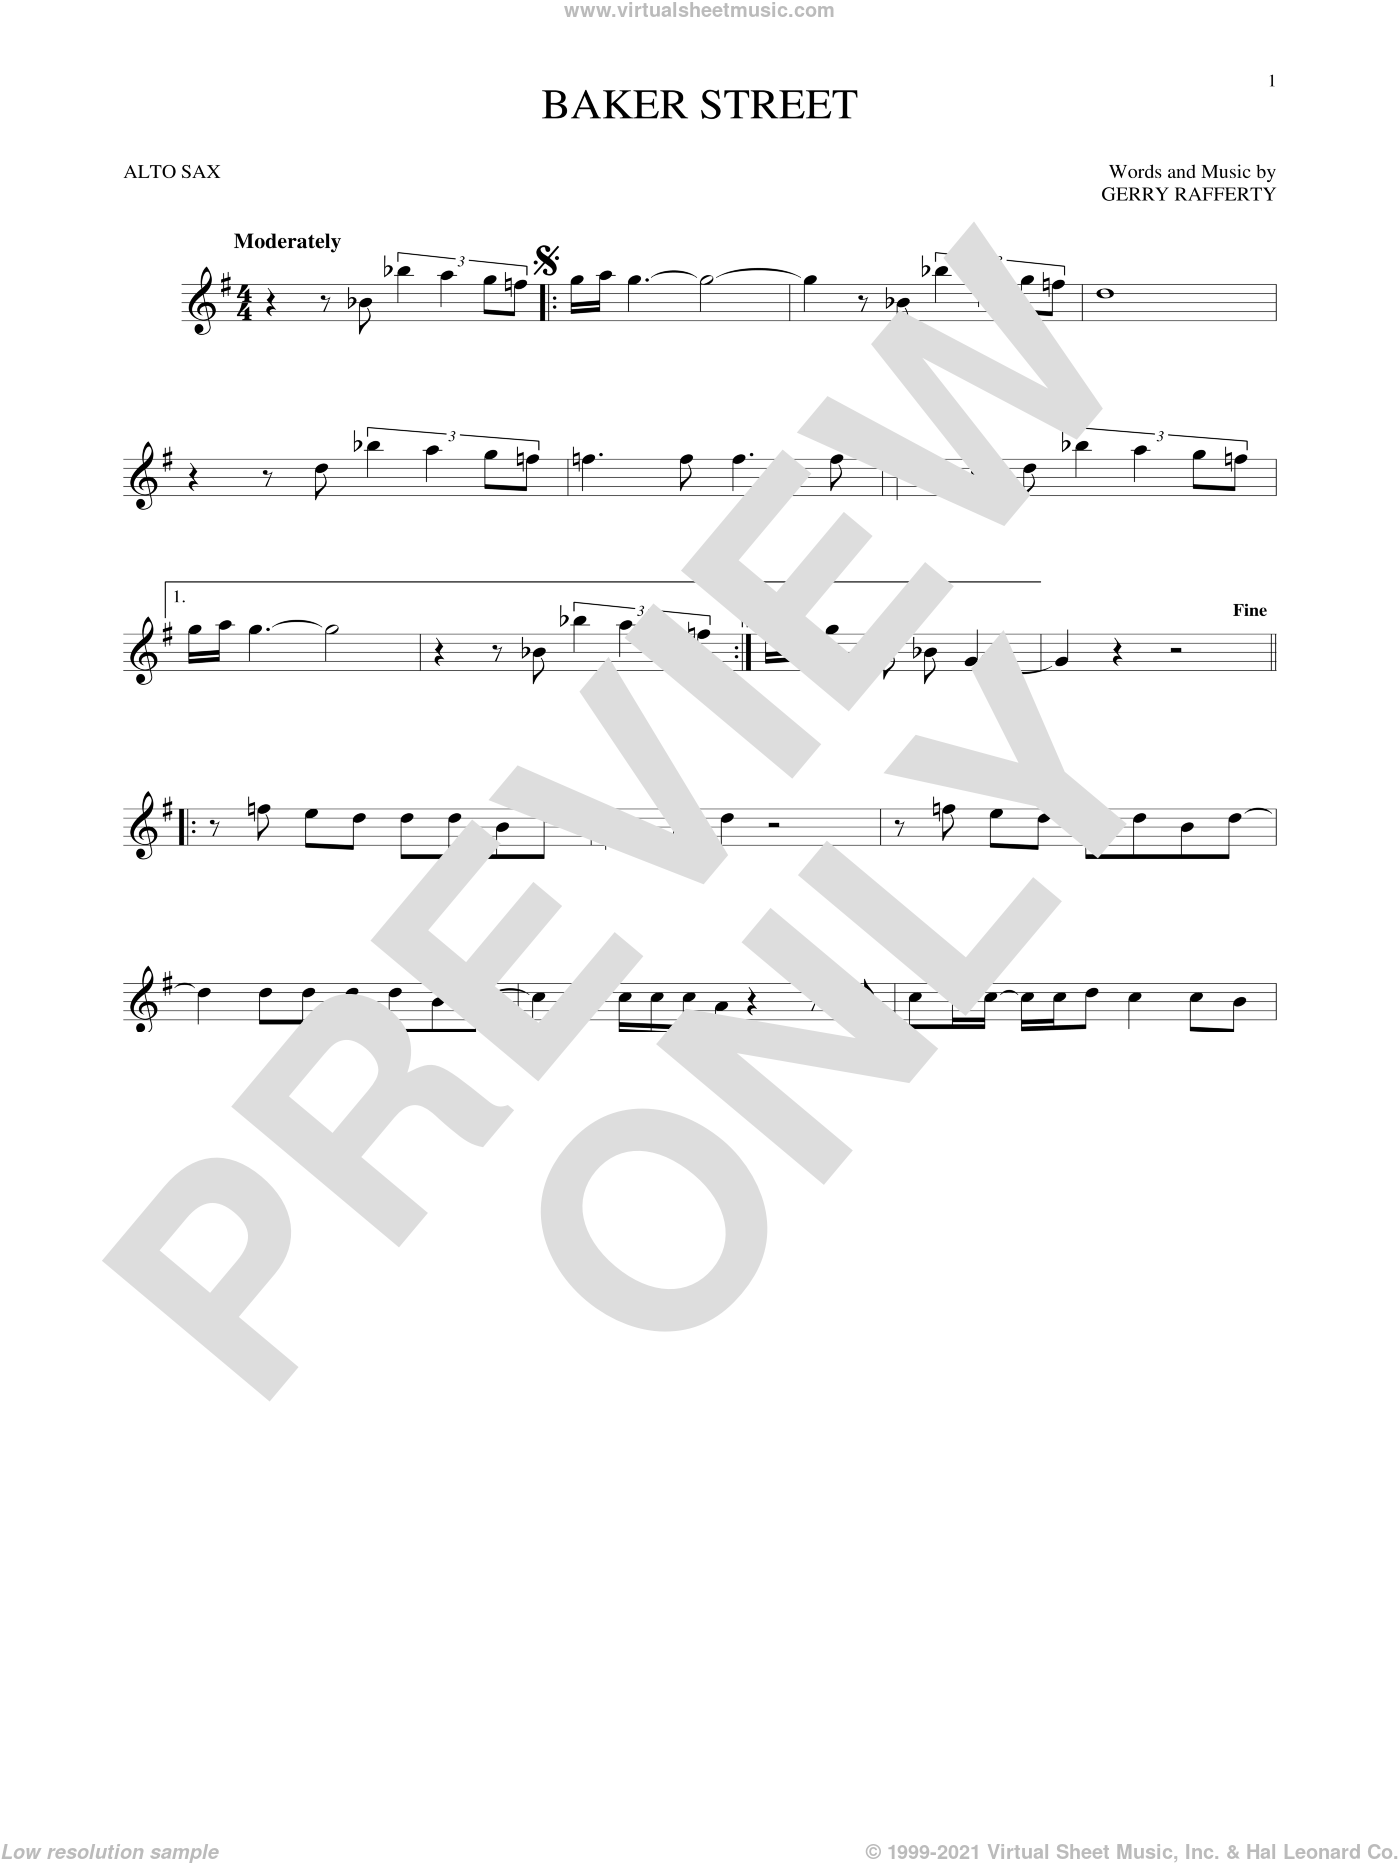 Baker Street sheet music for alto saxophone solo by Foo Fighters and Gerry Rafferty, intermediate skill level